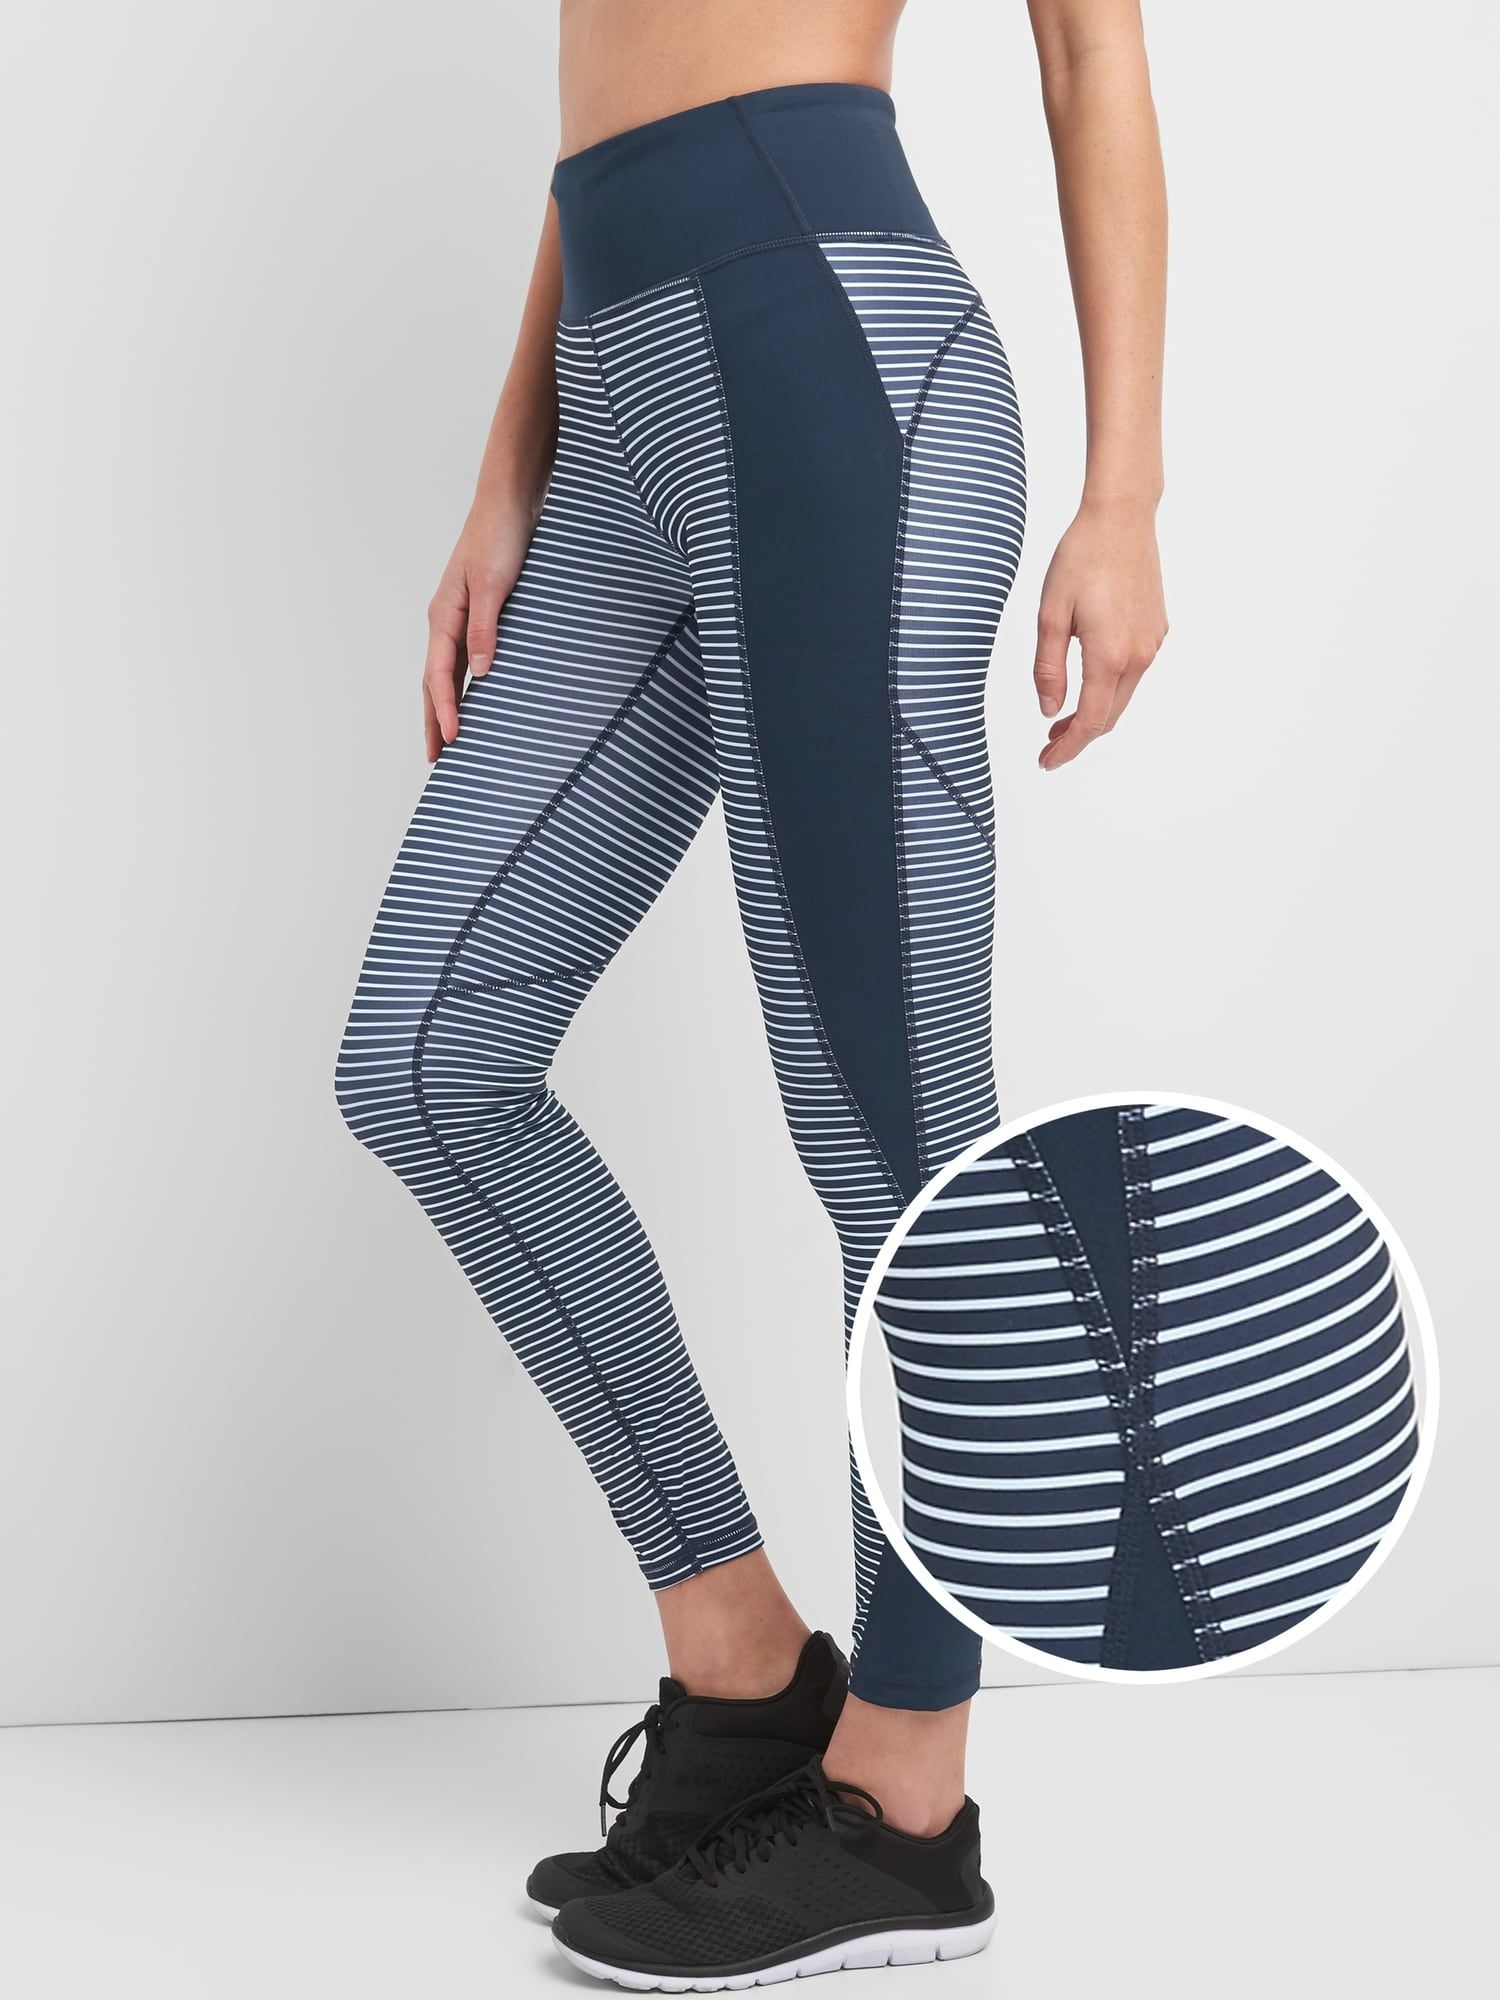 0dfb956f93 Gap Fit, GFast Mid Rise Leggings in Sculpt Compression, in Stripe Navy, $80